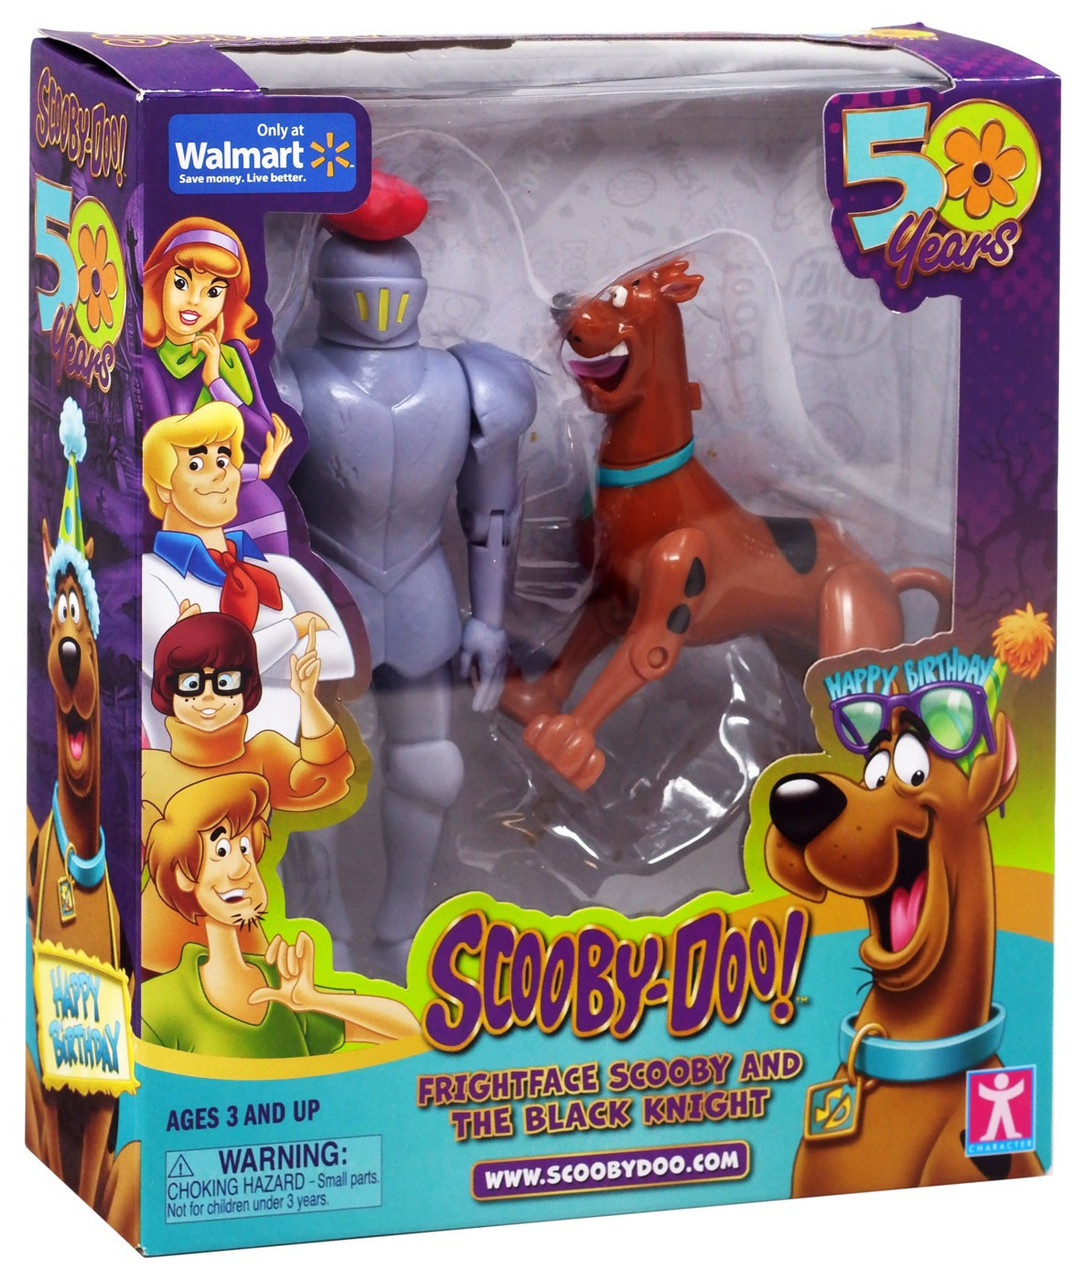 50 Years Frightface Scooby /& The Black Knight Action Figure New MISB Scooby-Doo